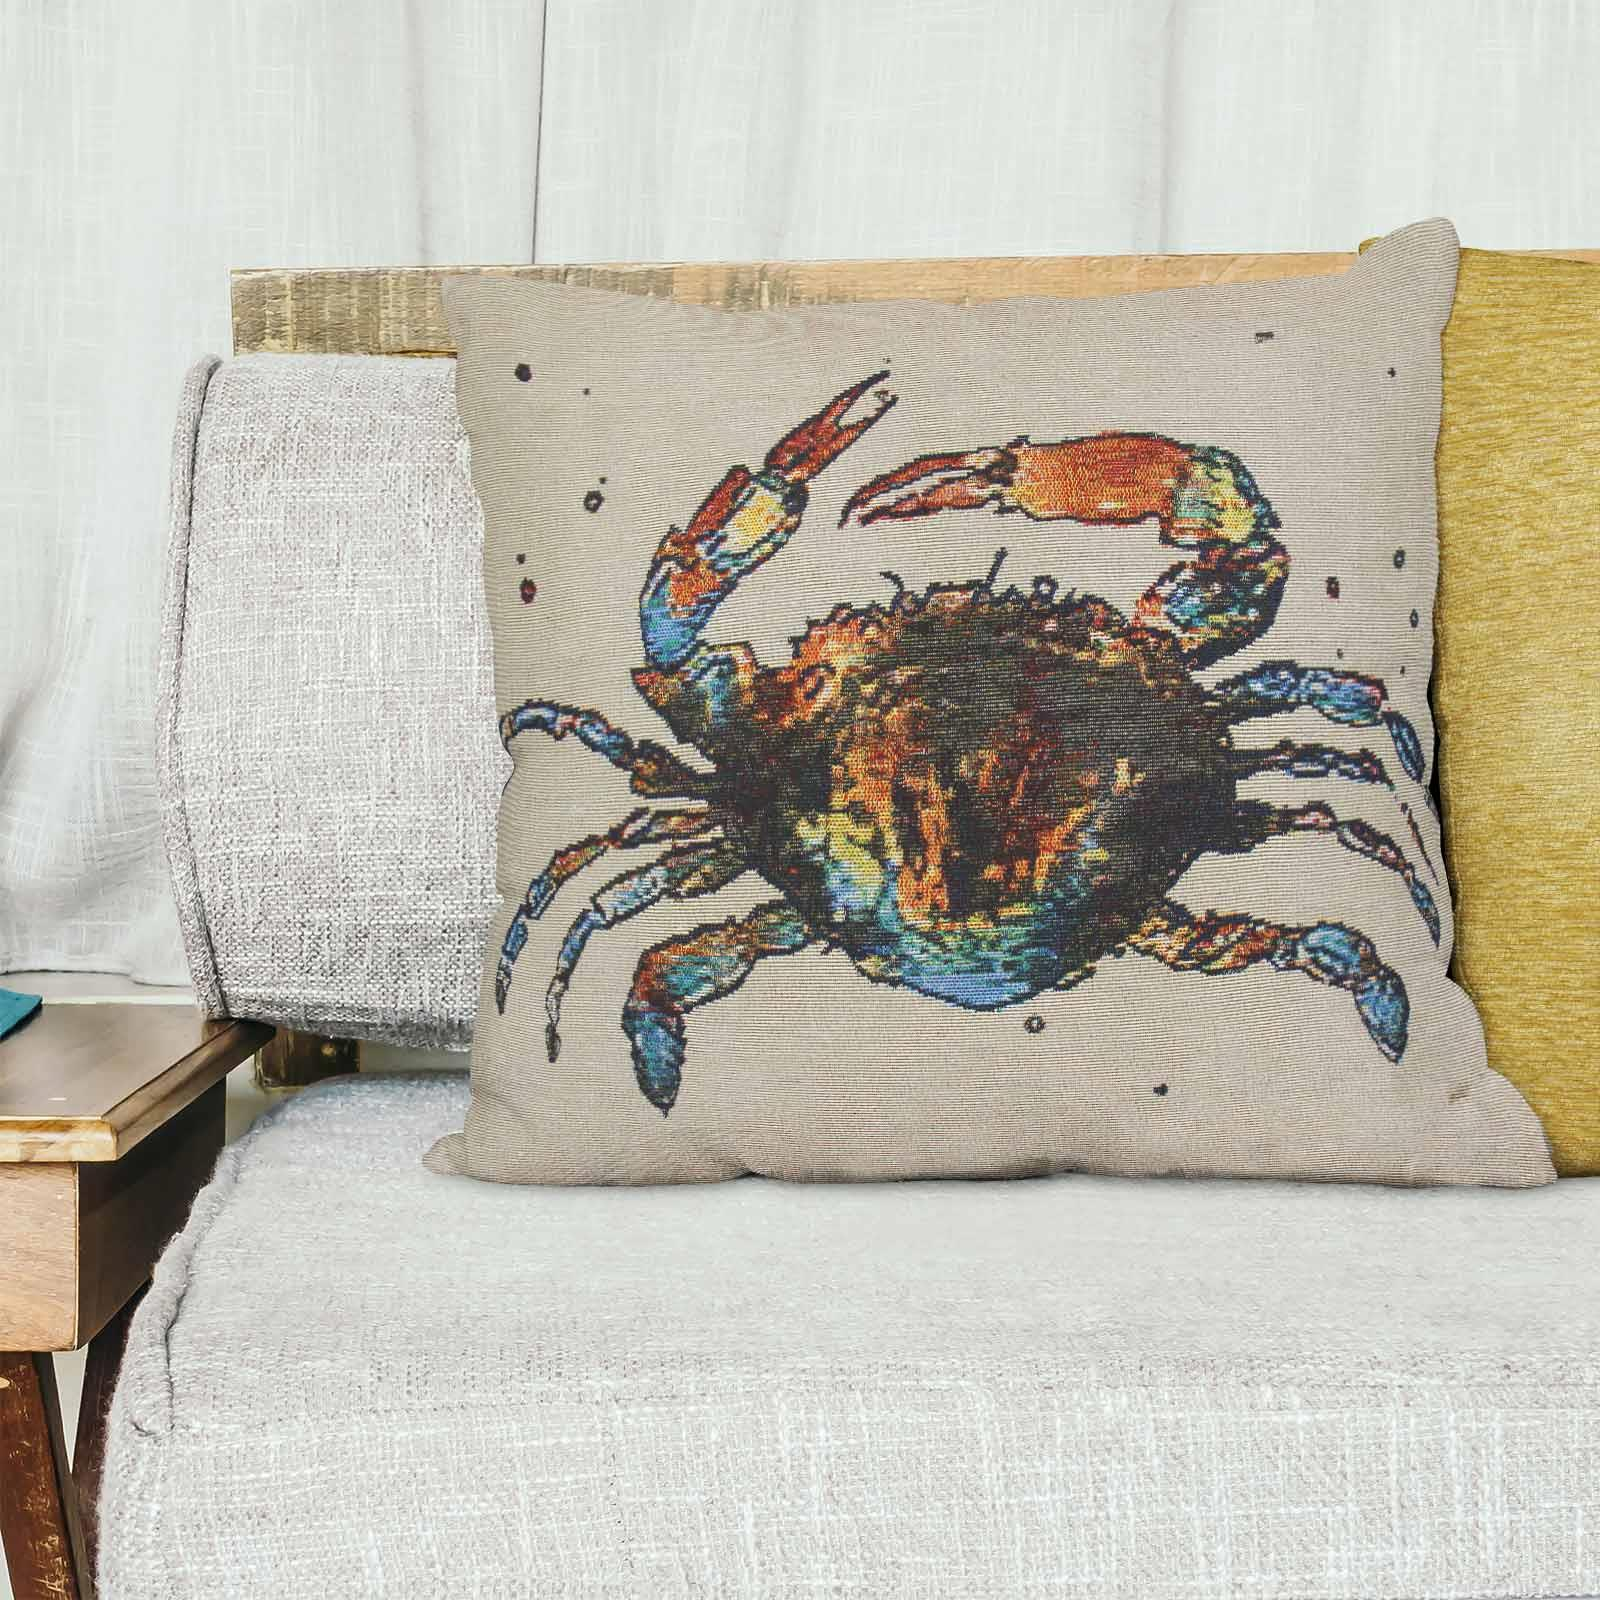 Tapestry-Cushion-Covers-Vintage-Pillow-Cover-Collection-18-034-45cm-Filled-Cushions thumbnail 36